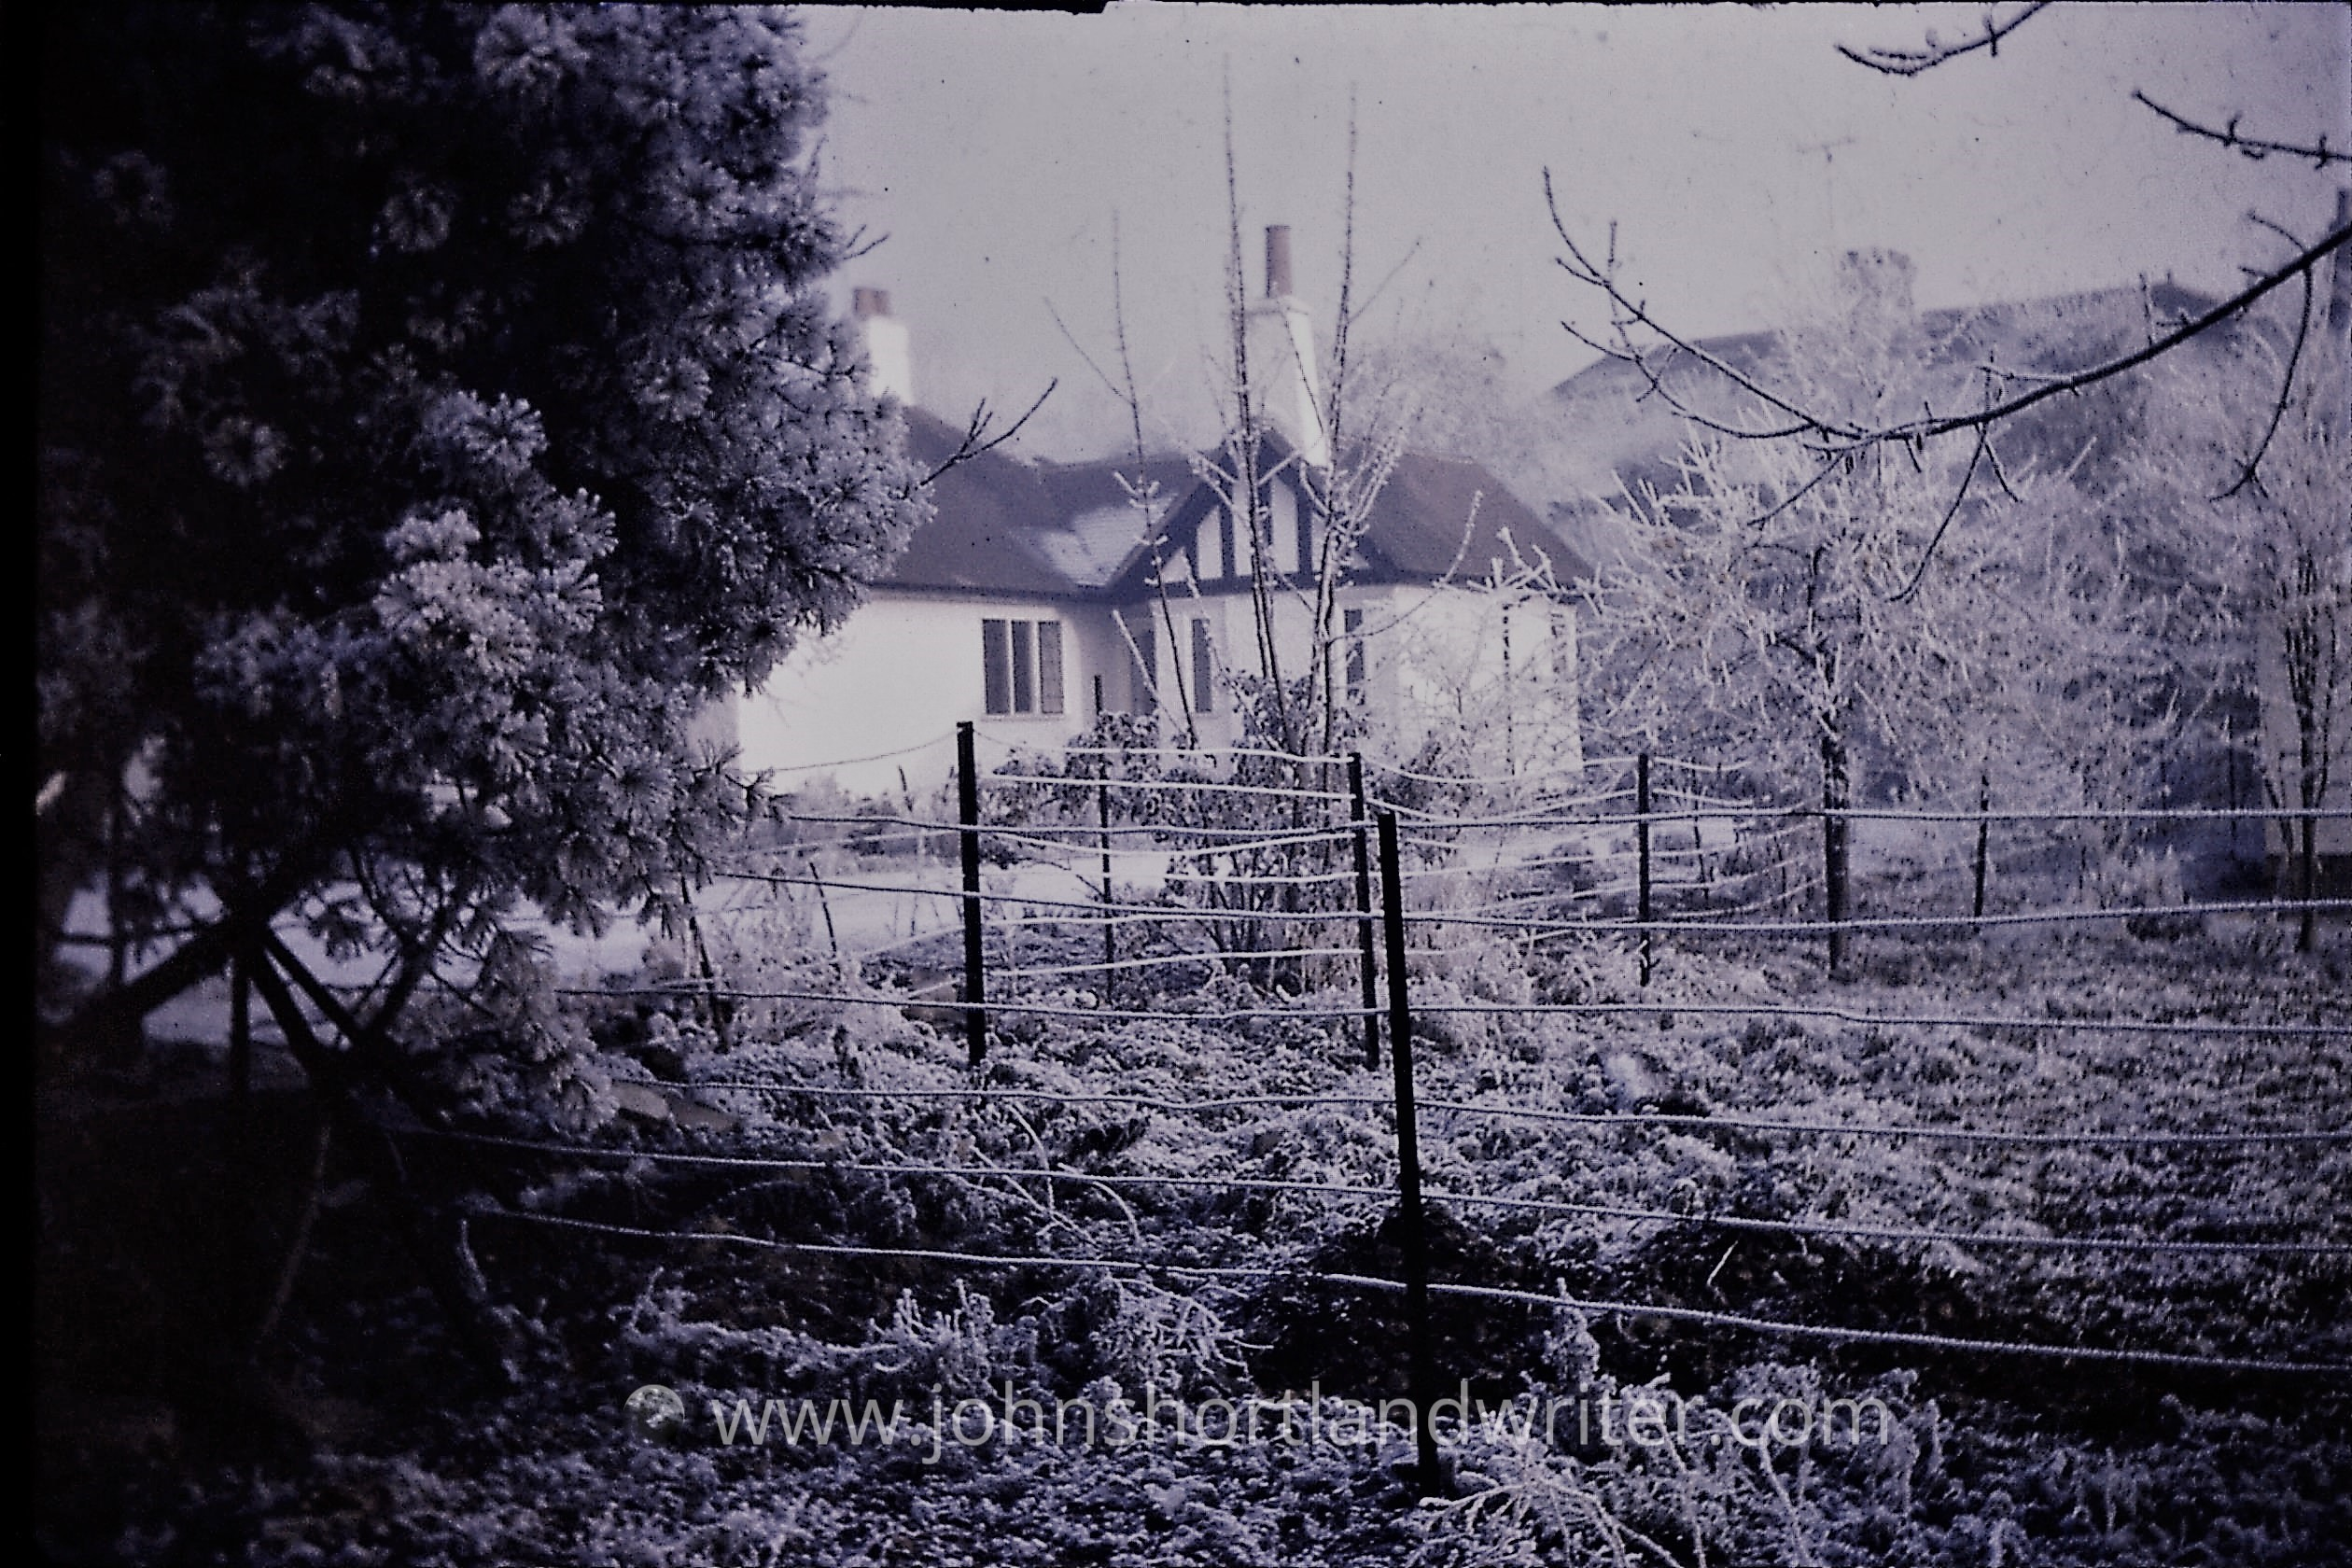 Hawthorne Cottage Xmas 1970 watermark